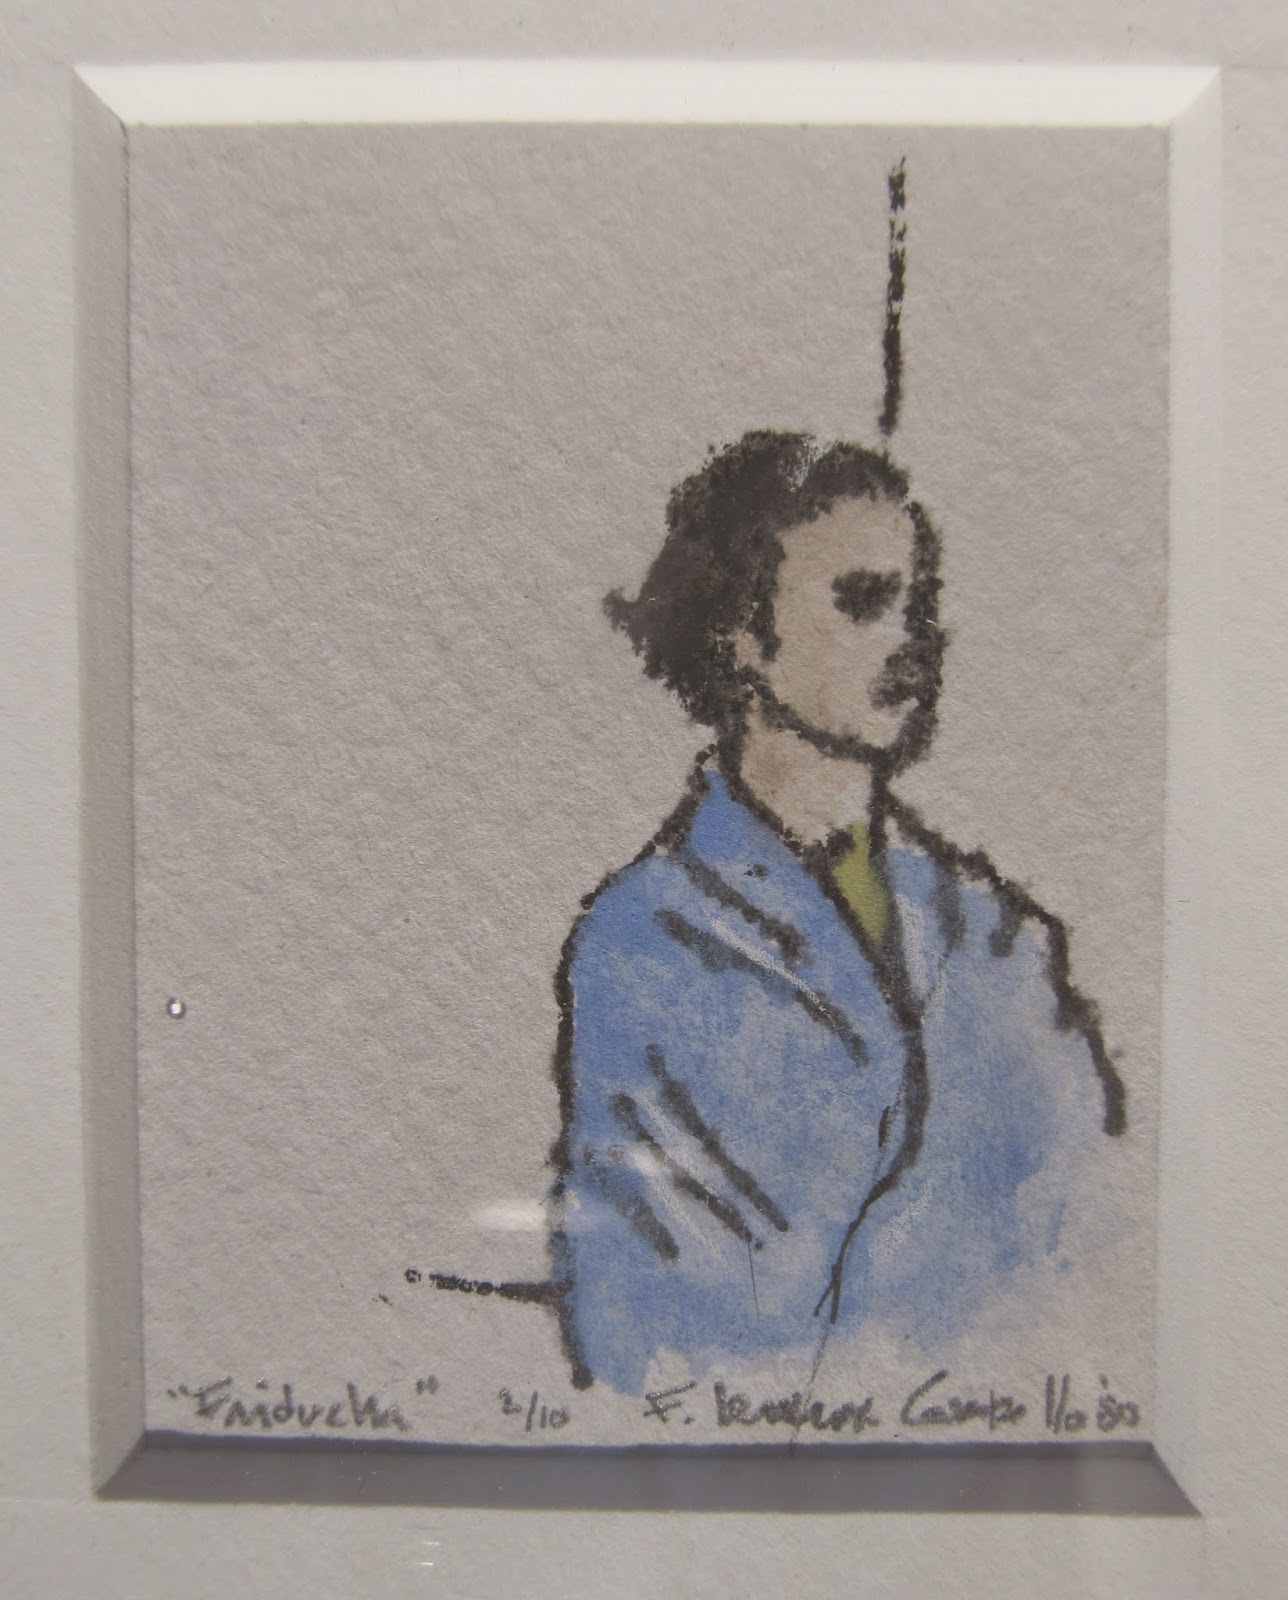 """Friducha"" by F. Lennox Campello,  Hand-colored stone lithograph, c. 1980, 2 x 1.75 inches. Edition of 10  Done as an assignment at the University of Washington School of Art"